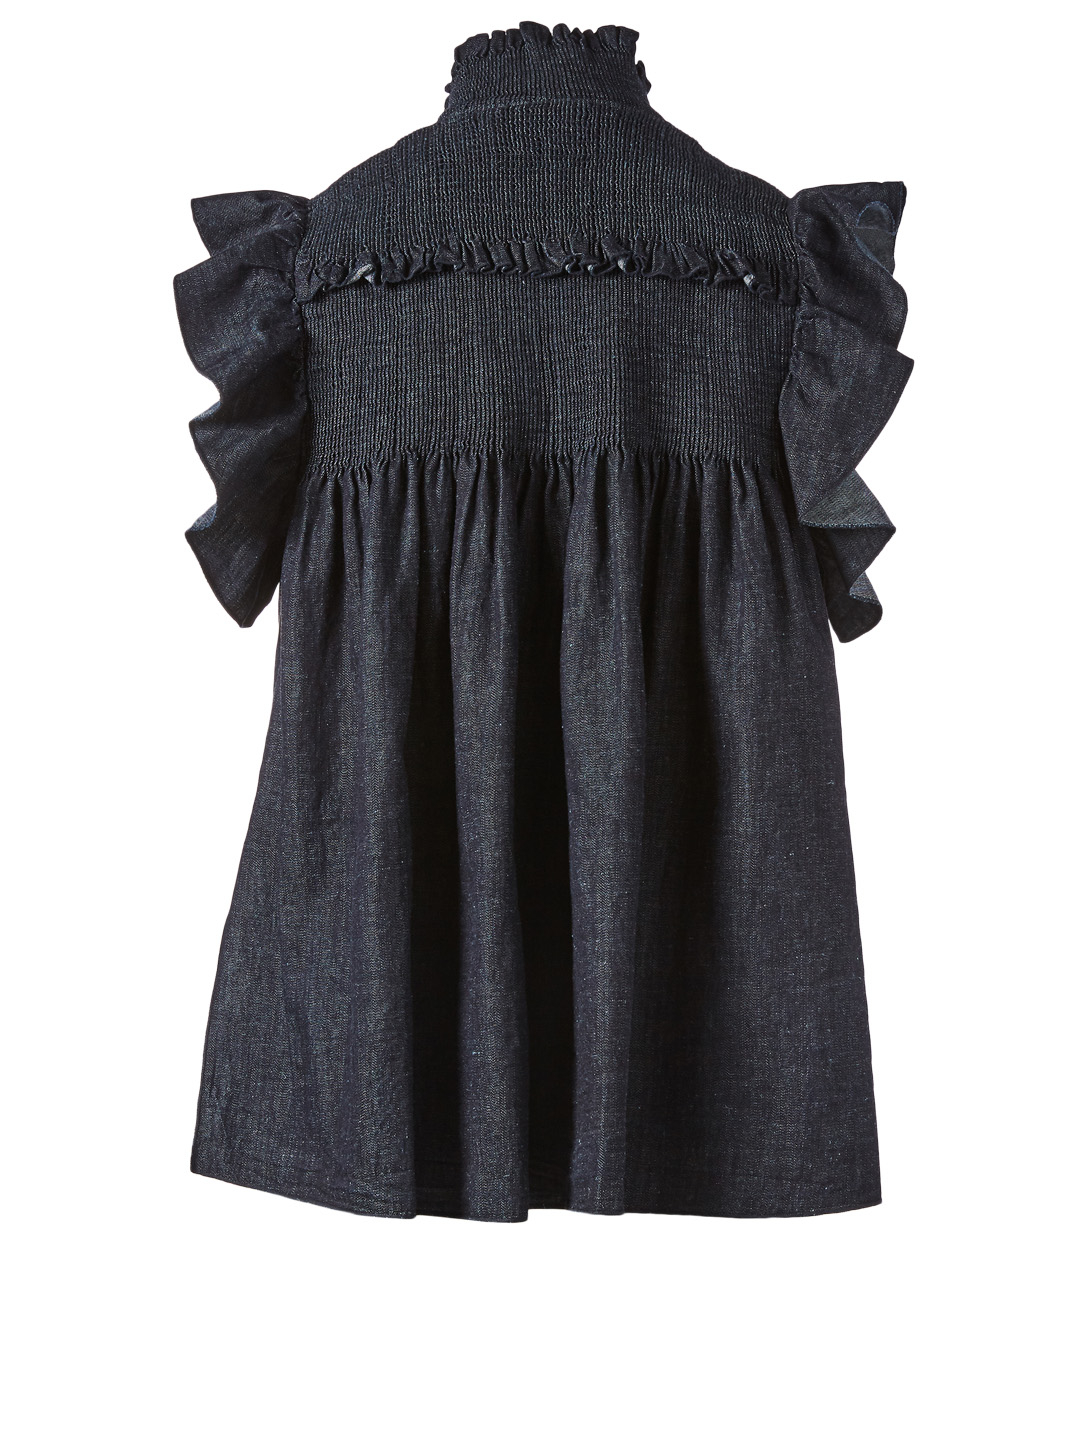 SEE BY CHLOÉ Cotton-Blend Ruffle Top Women's Blue